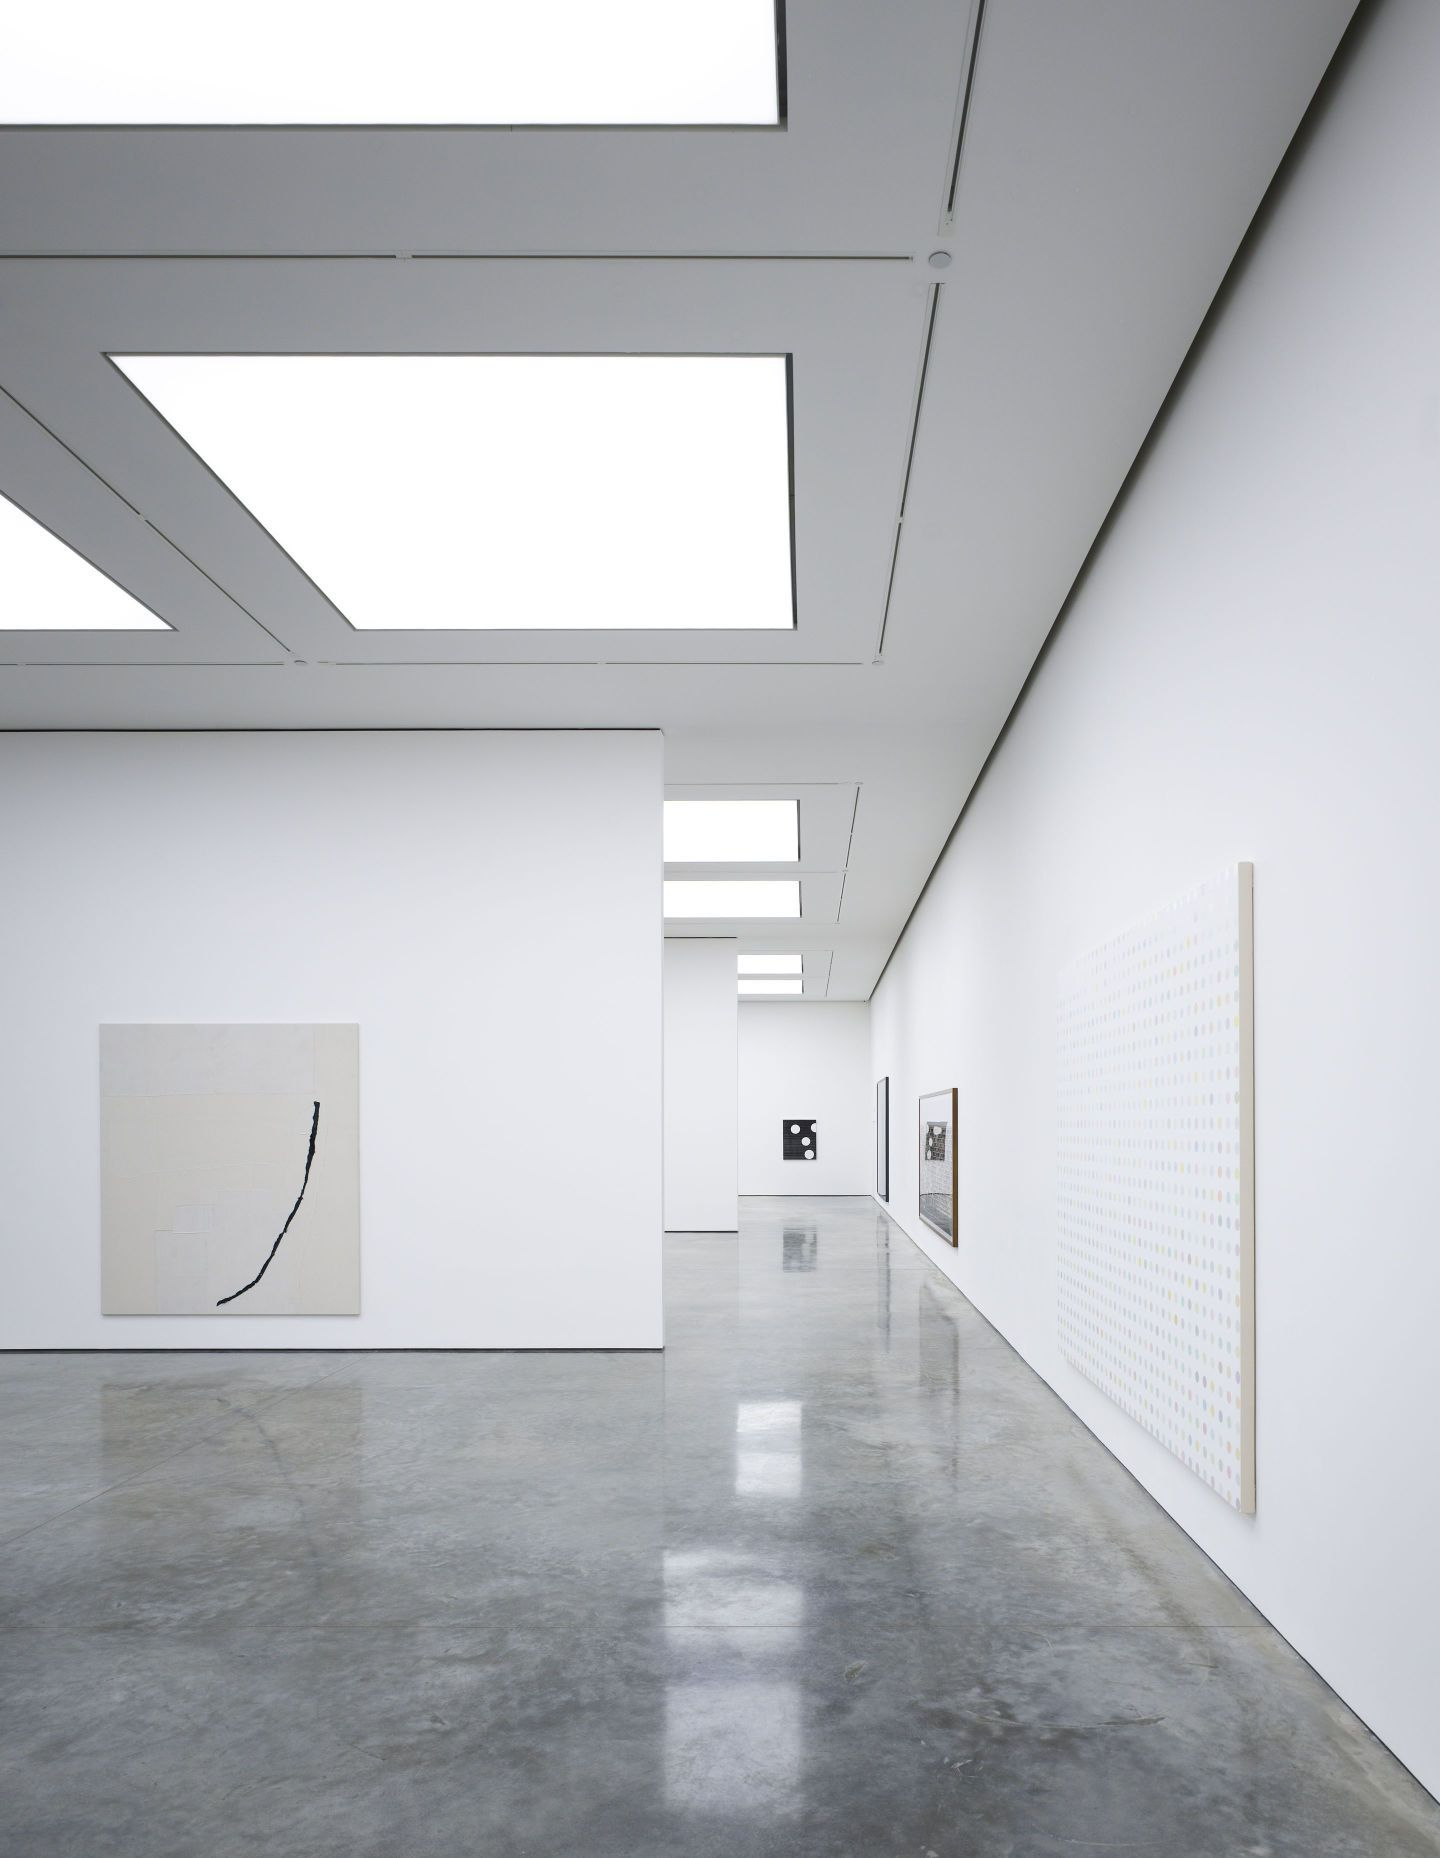 Conversion and extension of an existing 1970 warehouse into a contemporary art gallery complex - Conversion ca en m2 ...